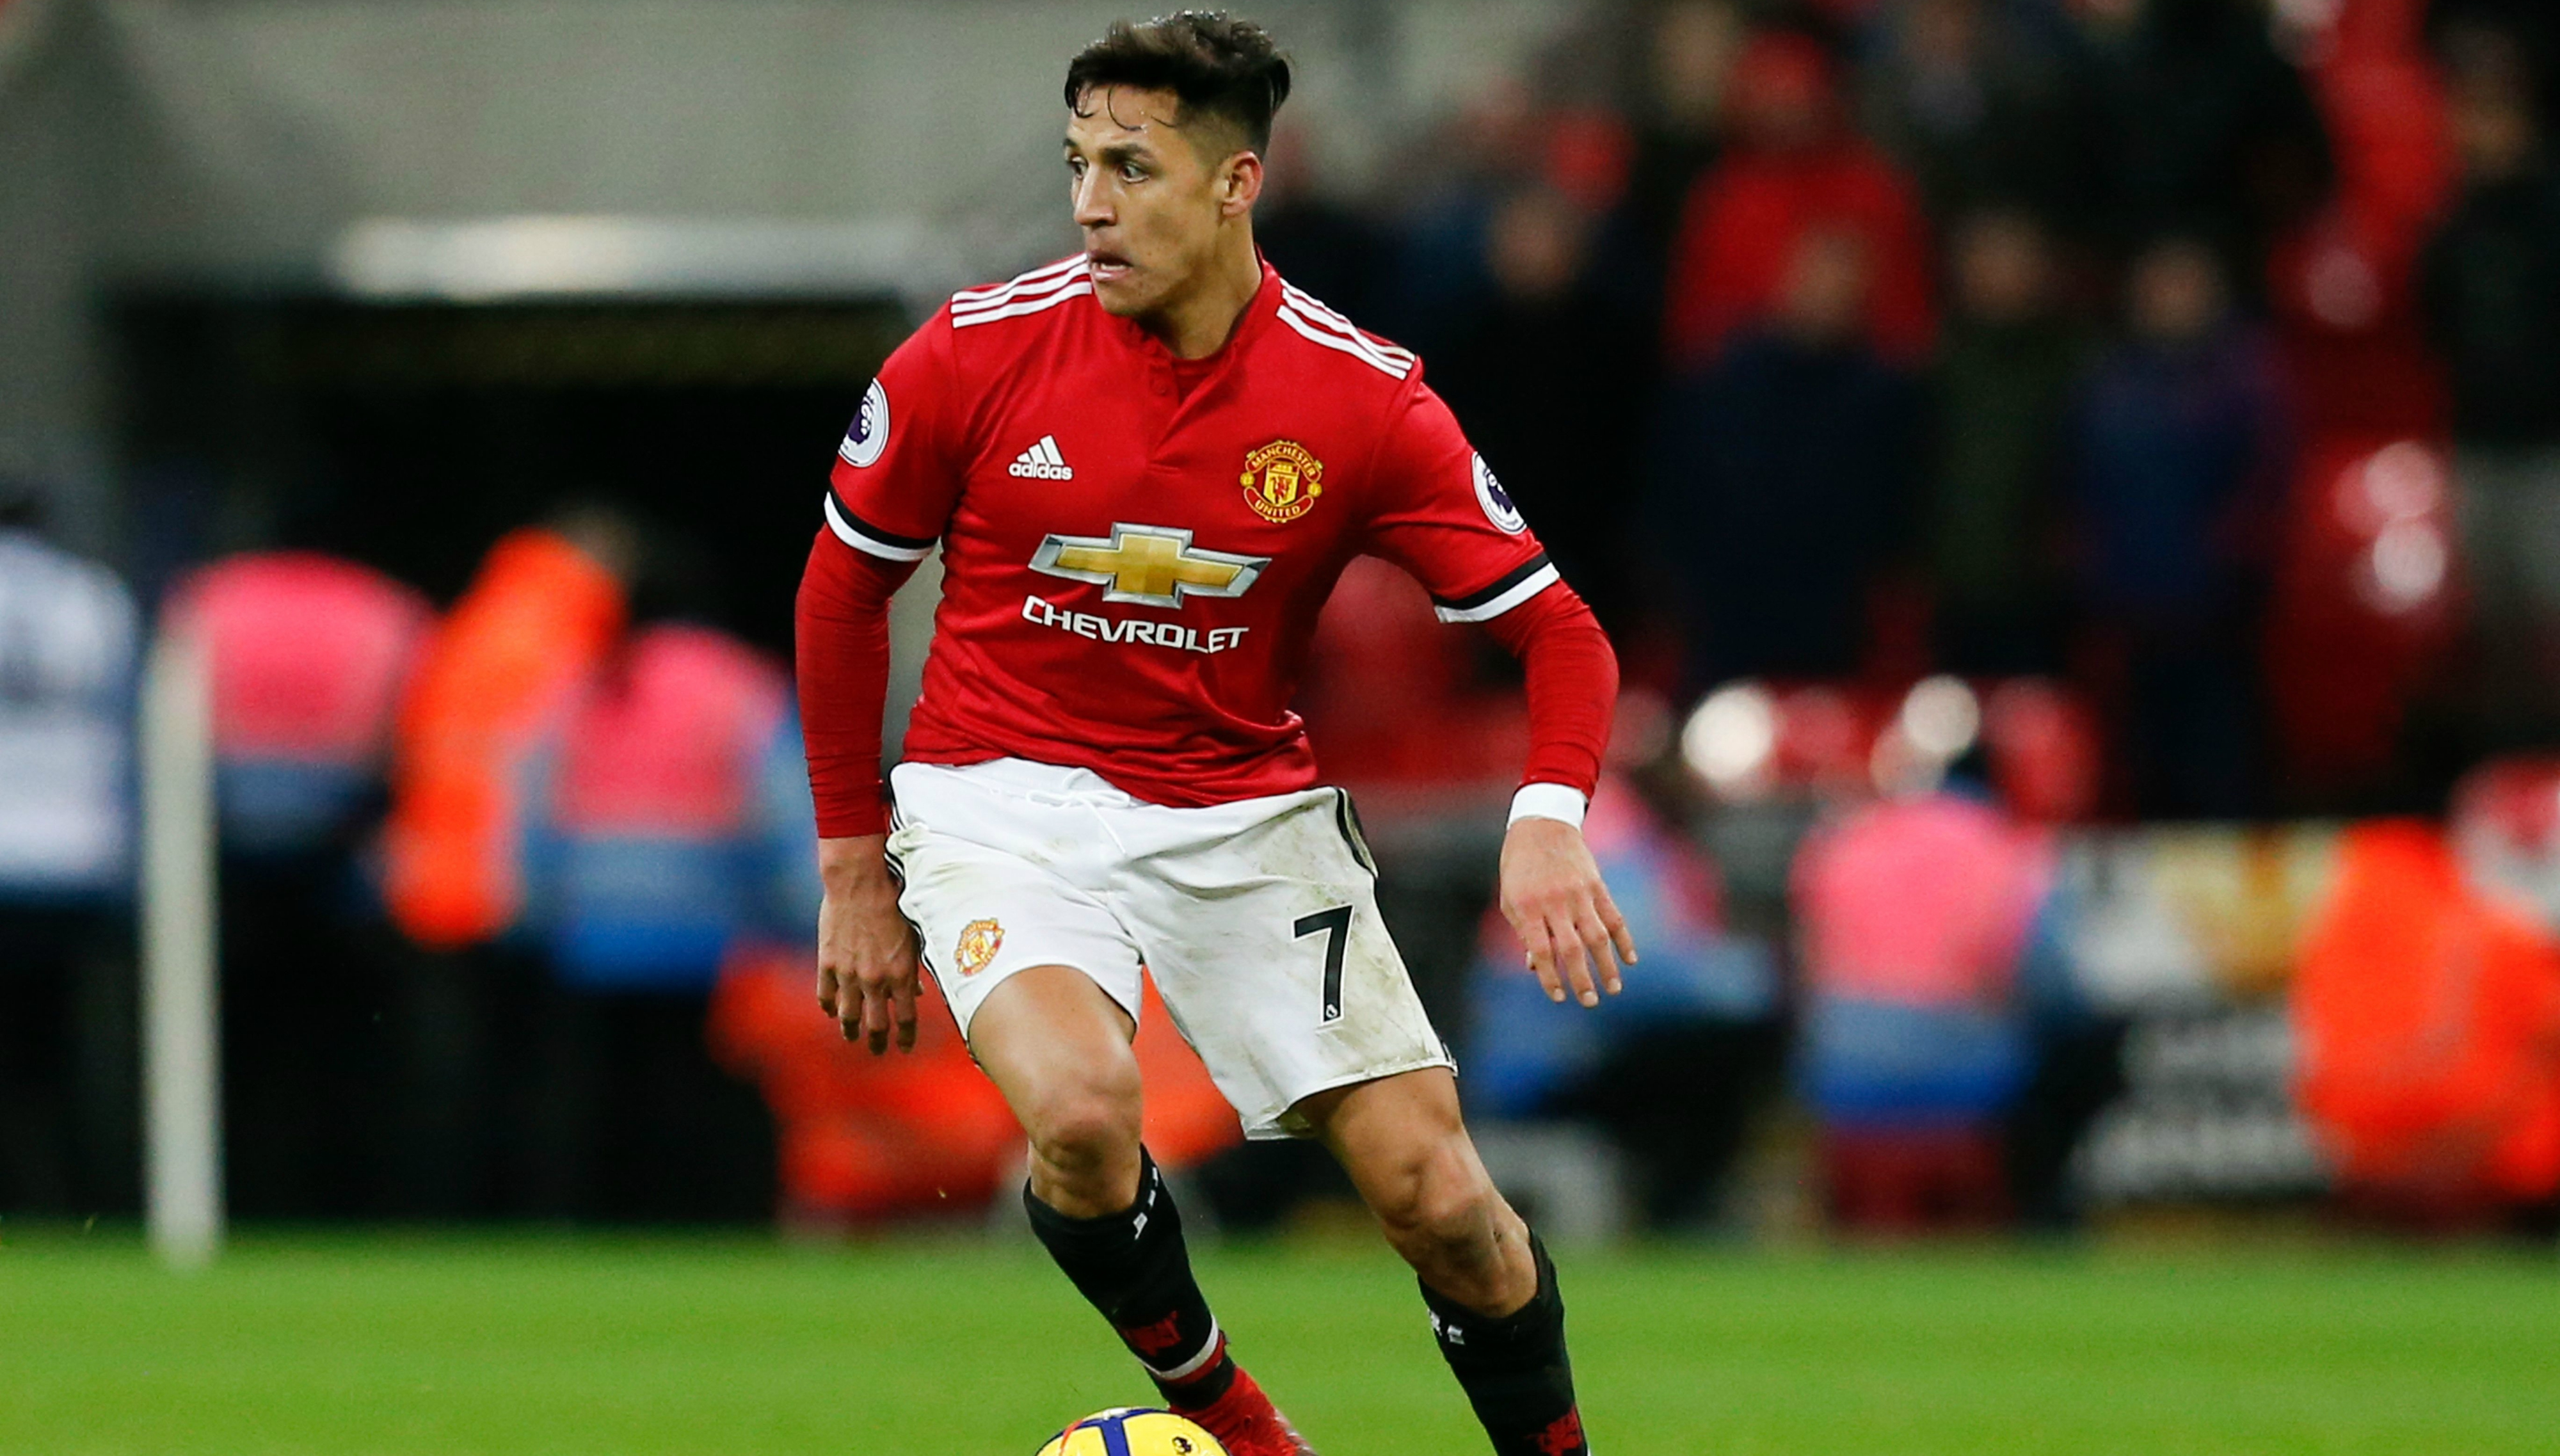 Alexis sanchez a rare bright spark as man united endure wembley woe two sides with ambitions of top four finishes clashed at wembley but the difference in quality on the night between tottenham and manchester united was stopboris Image collections